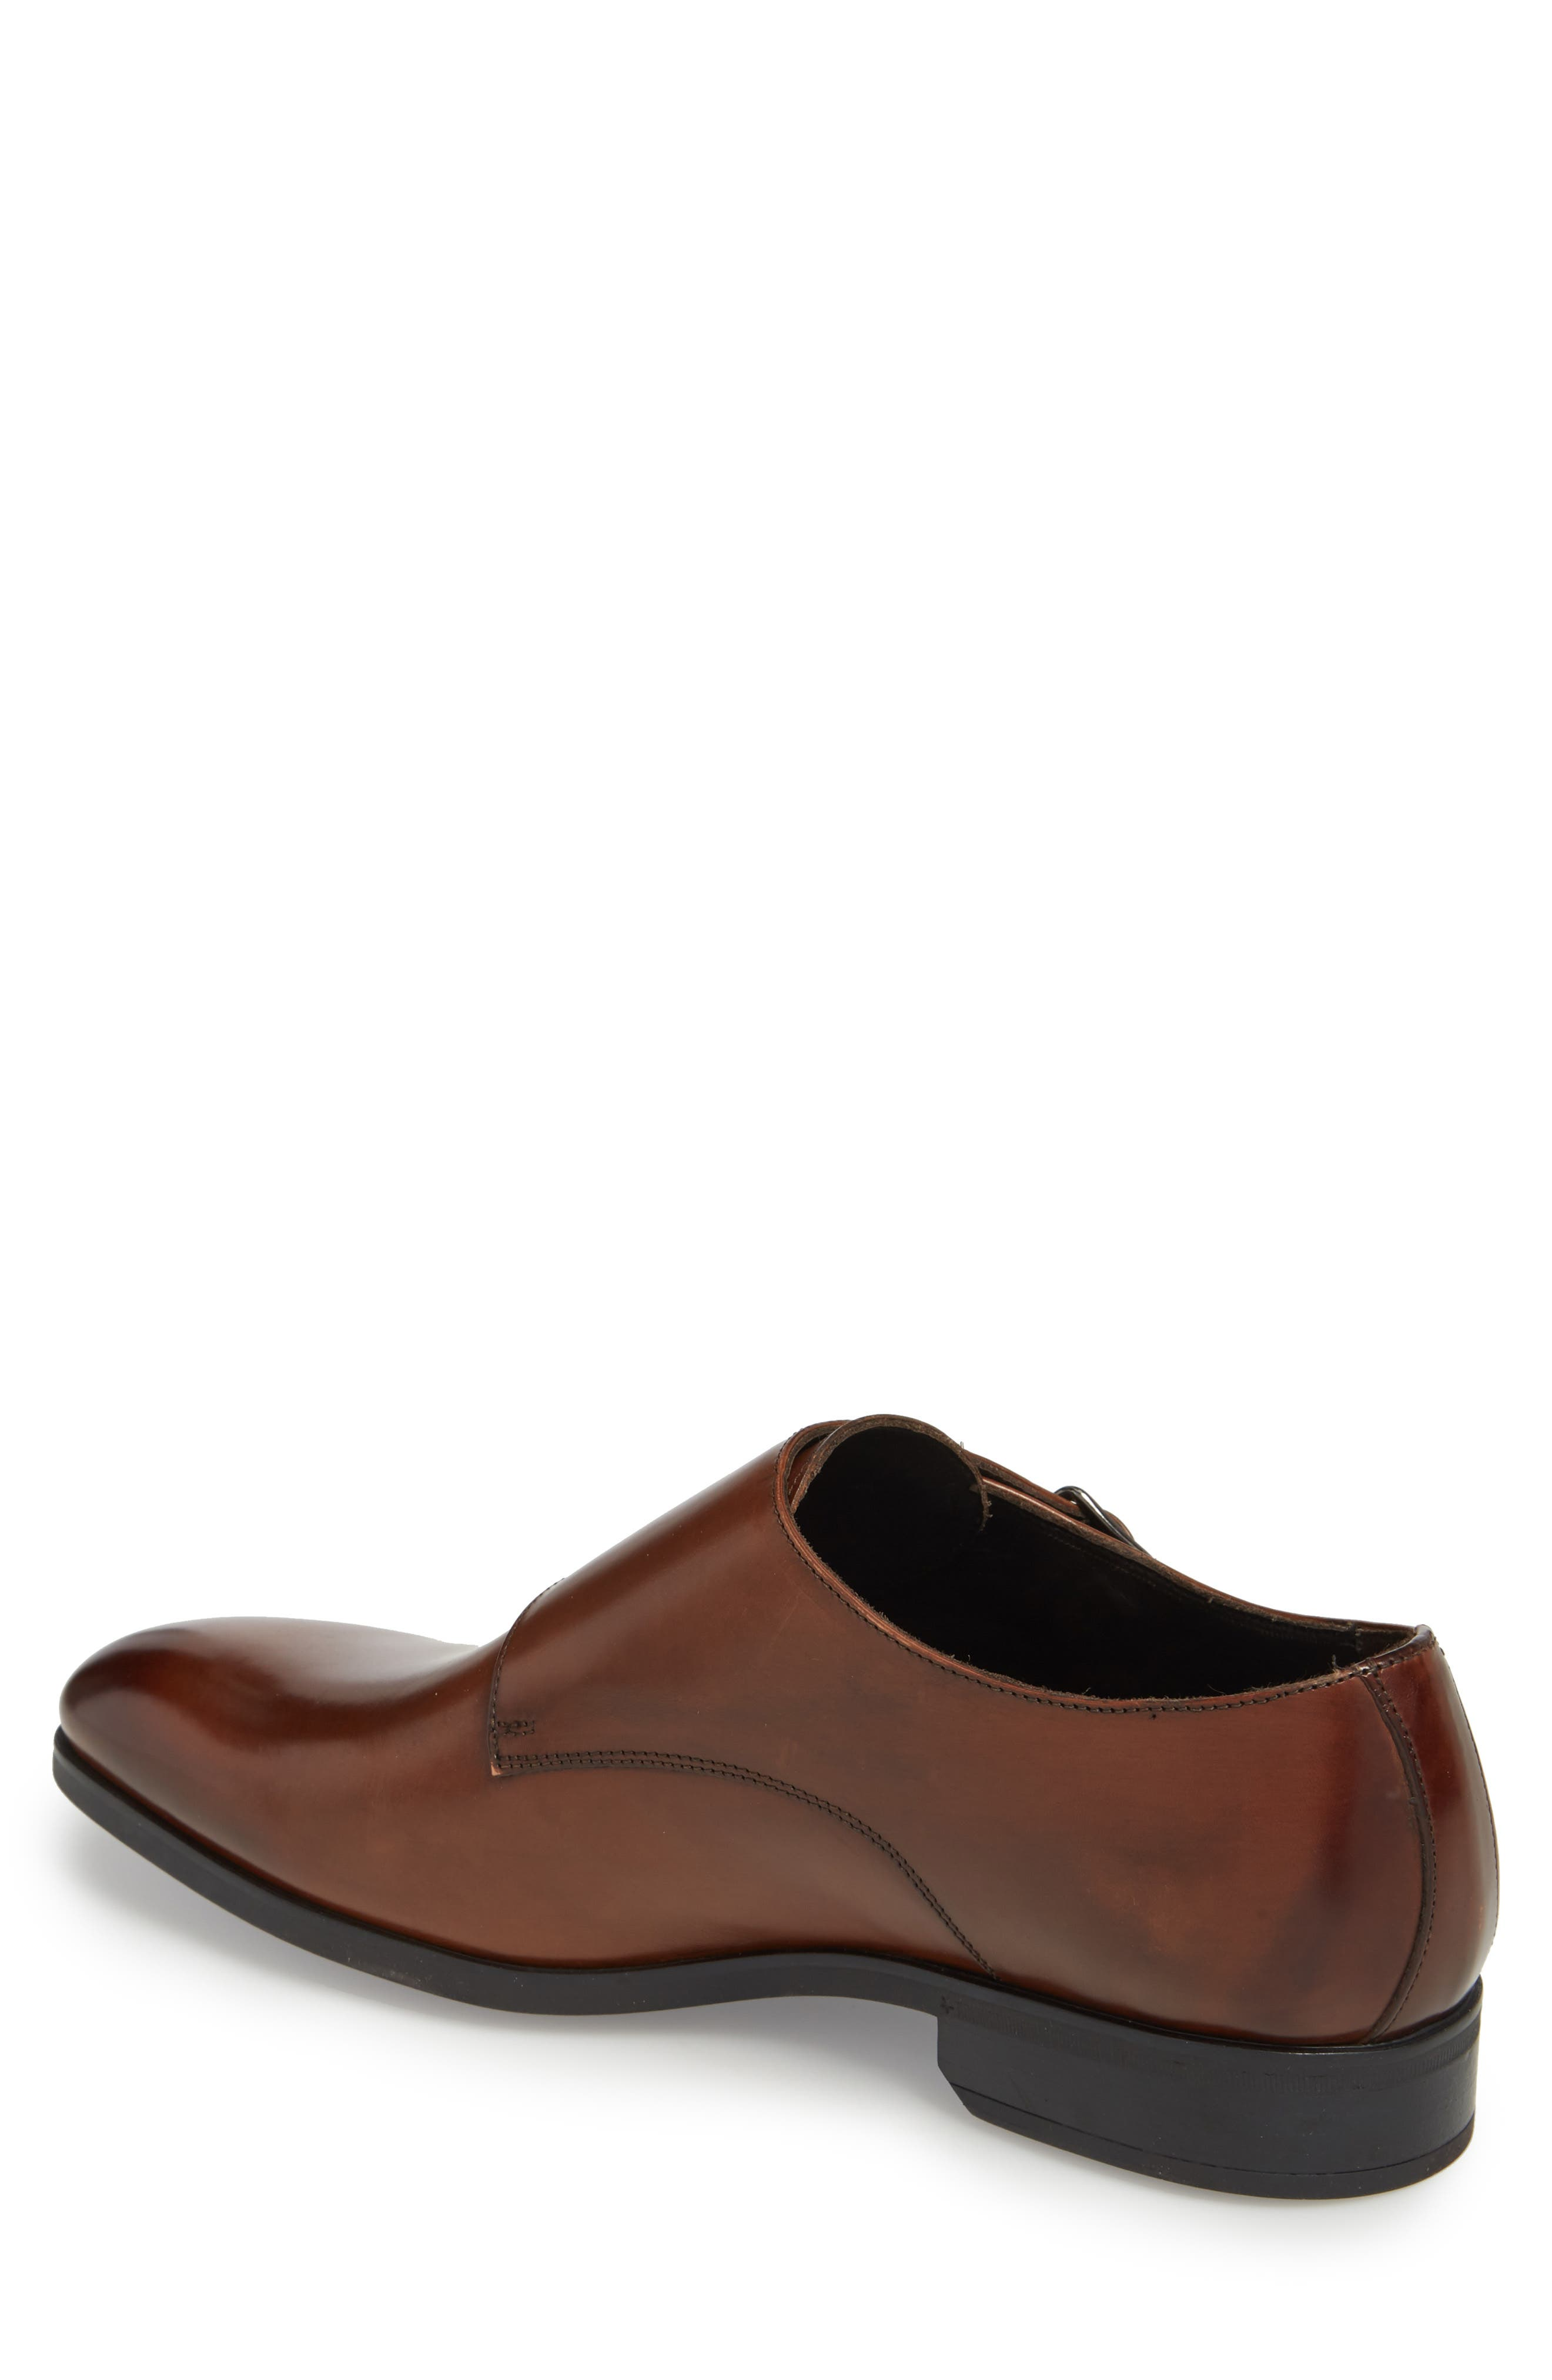 TO BOOT NEW YORK, Benjamin Double Monk Strap Shoe, Alternate thumbnail 2, color, TMORO LEATHER